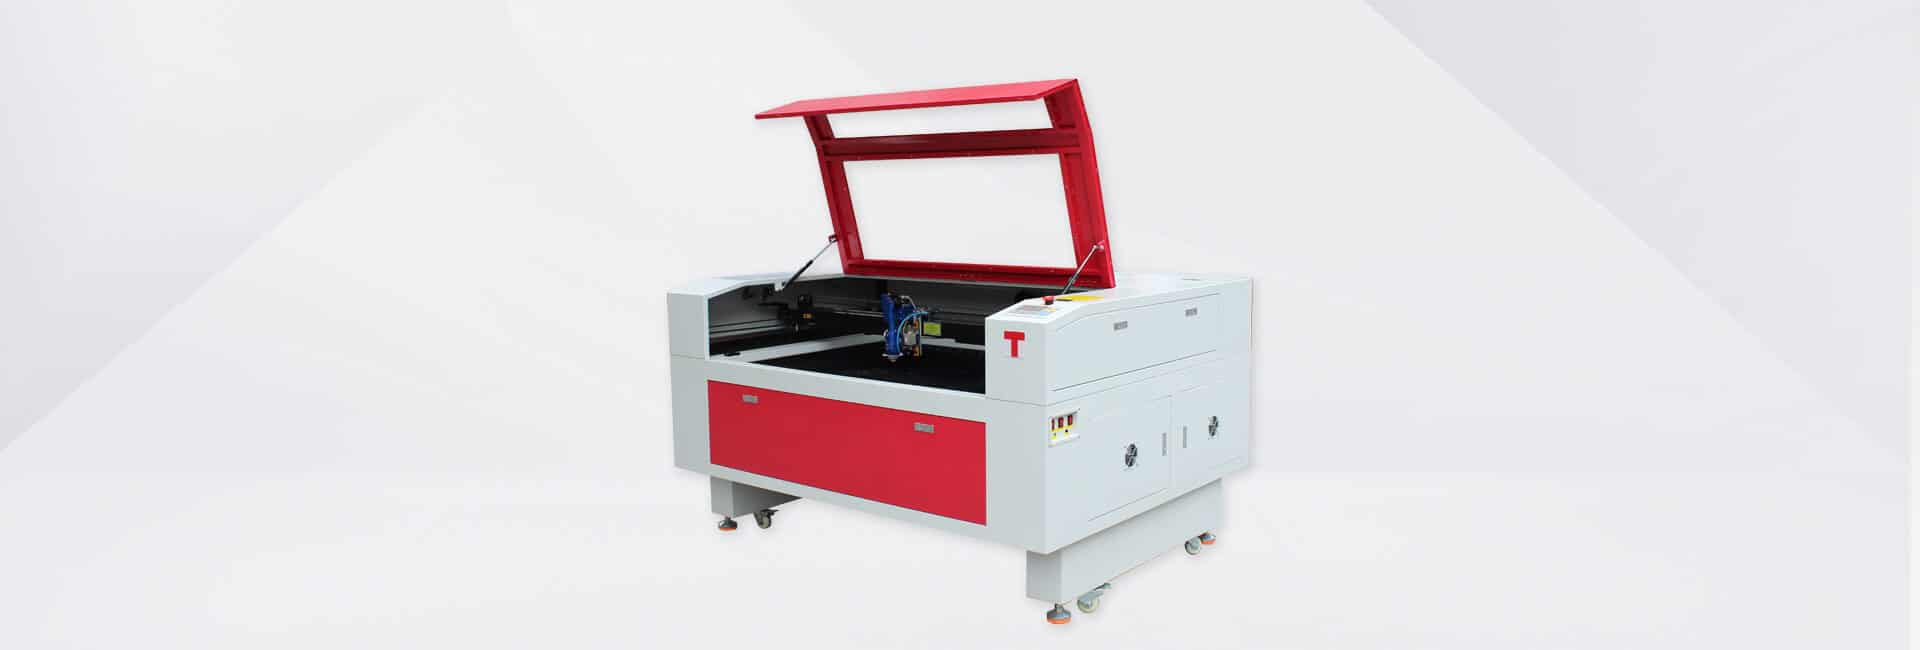 Laser Cutting Machine Metal Cheap Metal Laser Cutter It Can Cut Metal And Non Metal Materials